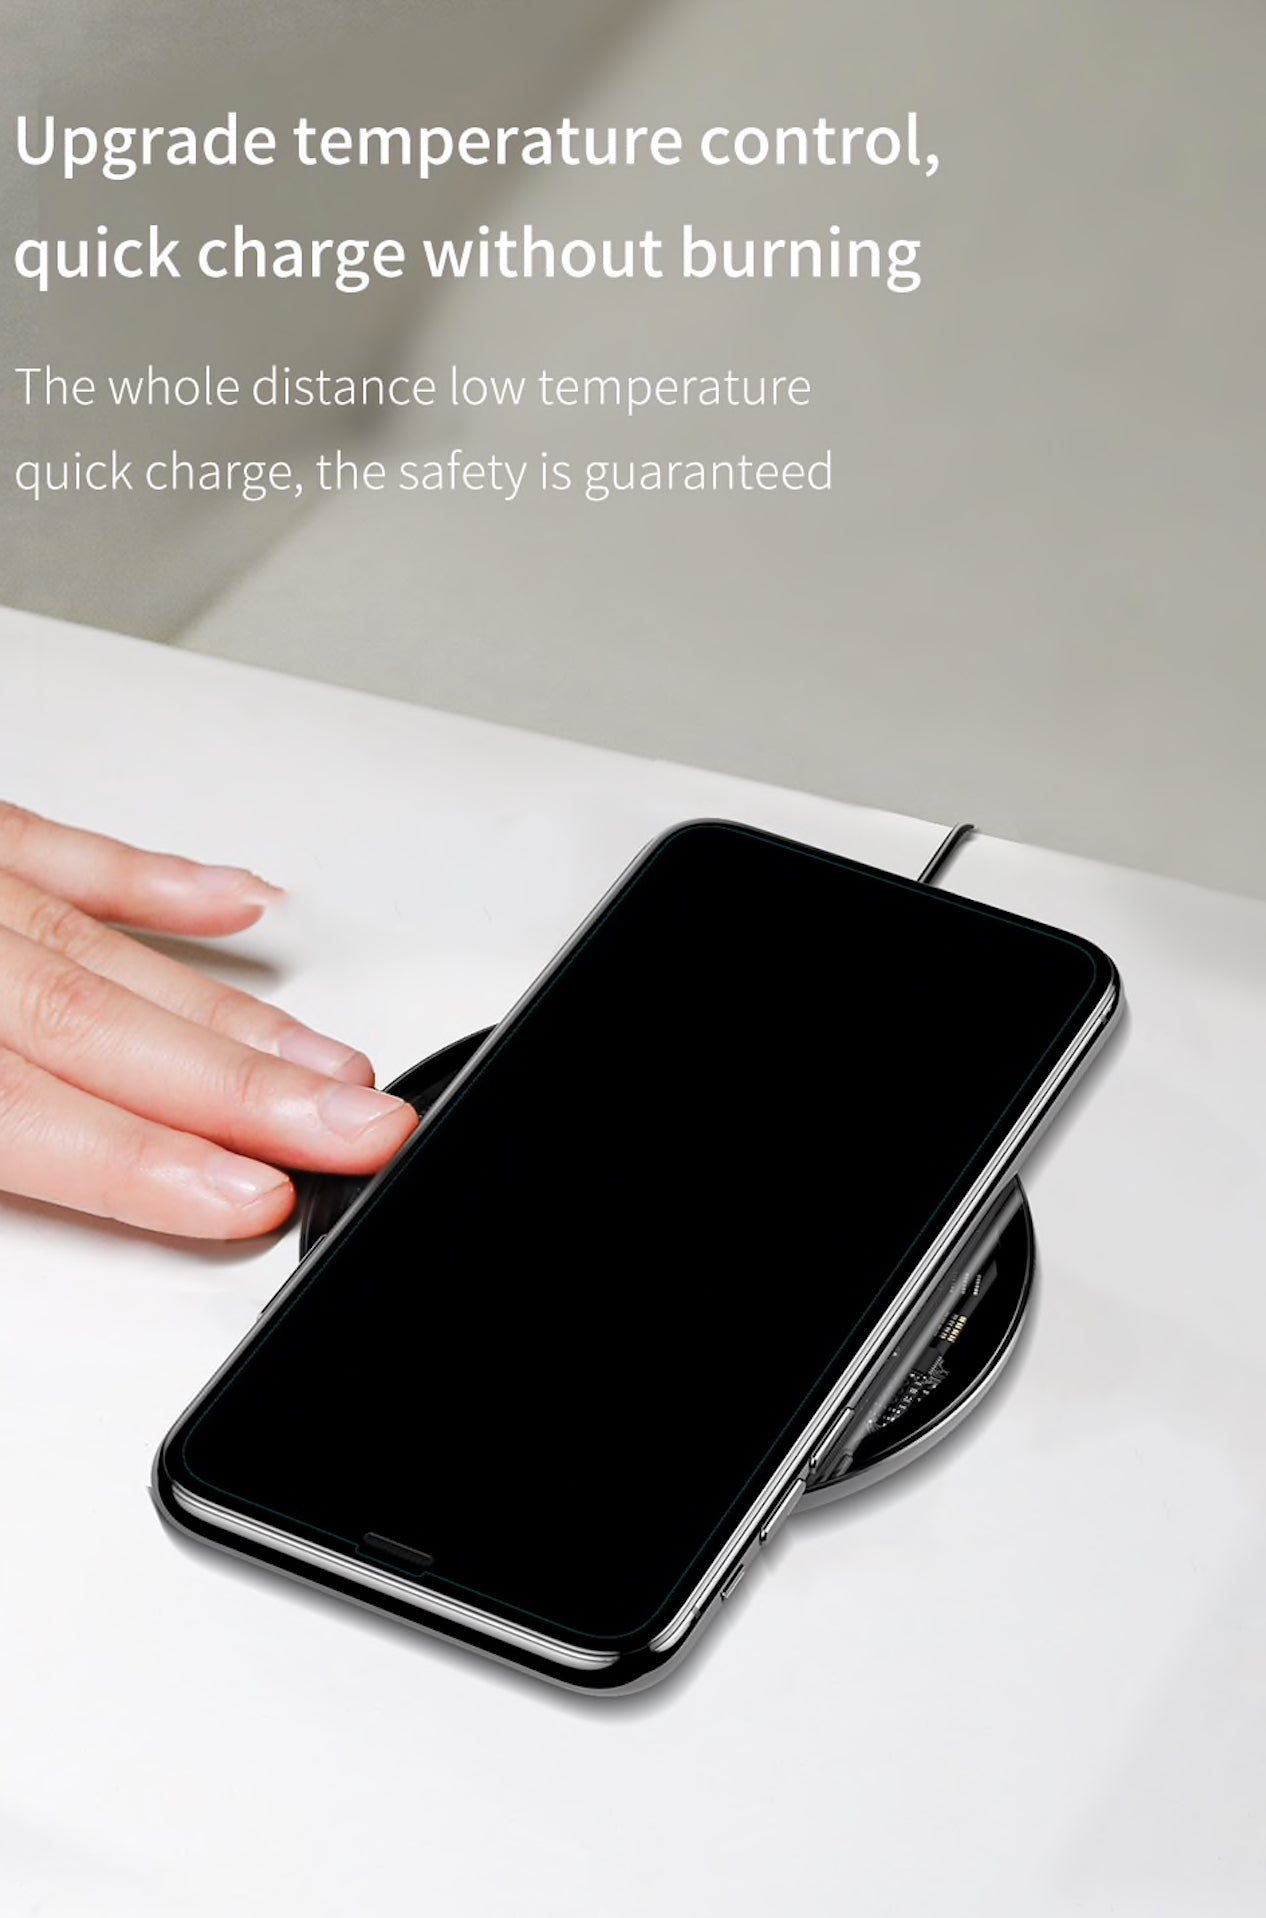 10w Baseus Simple Qi Wireless Charger for iPhone, Samsung